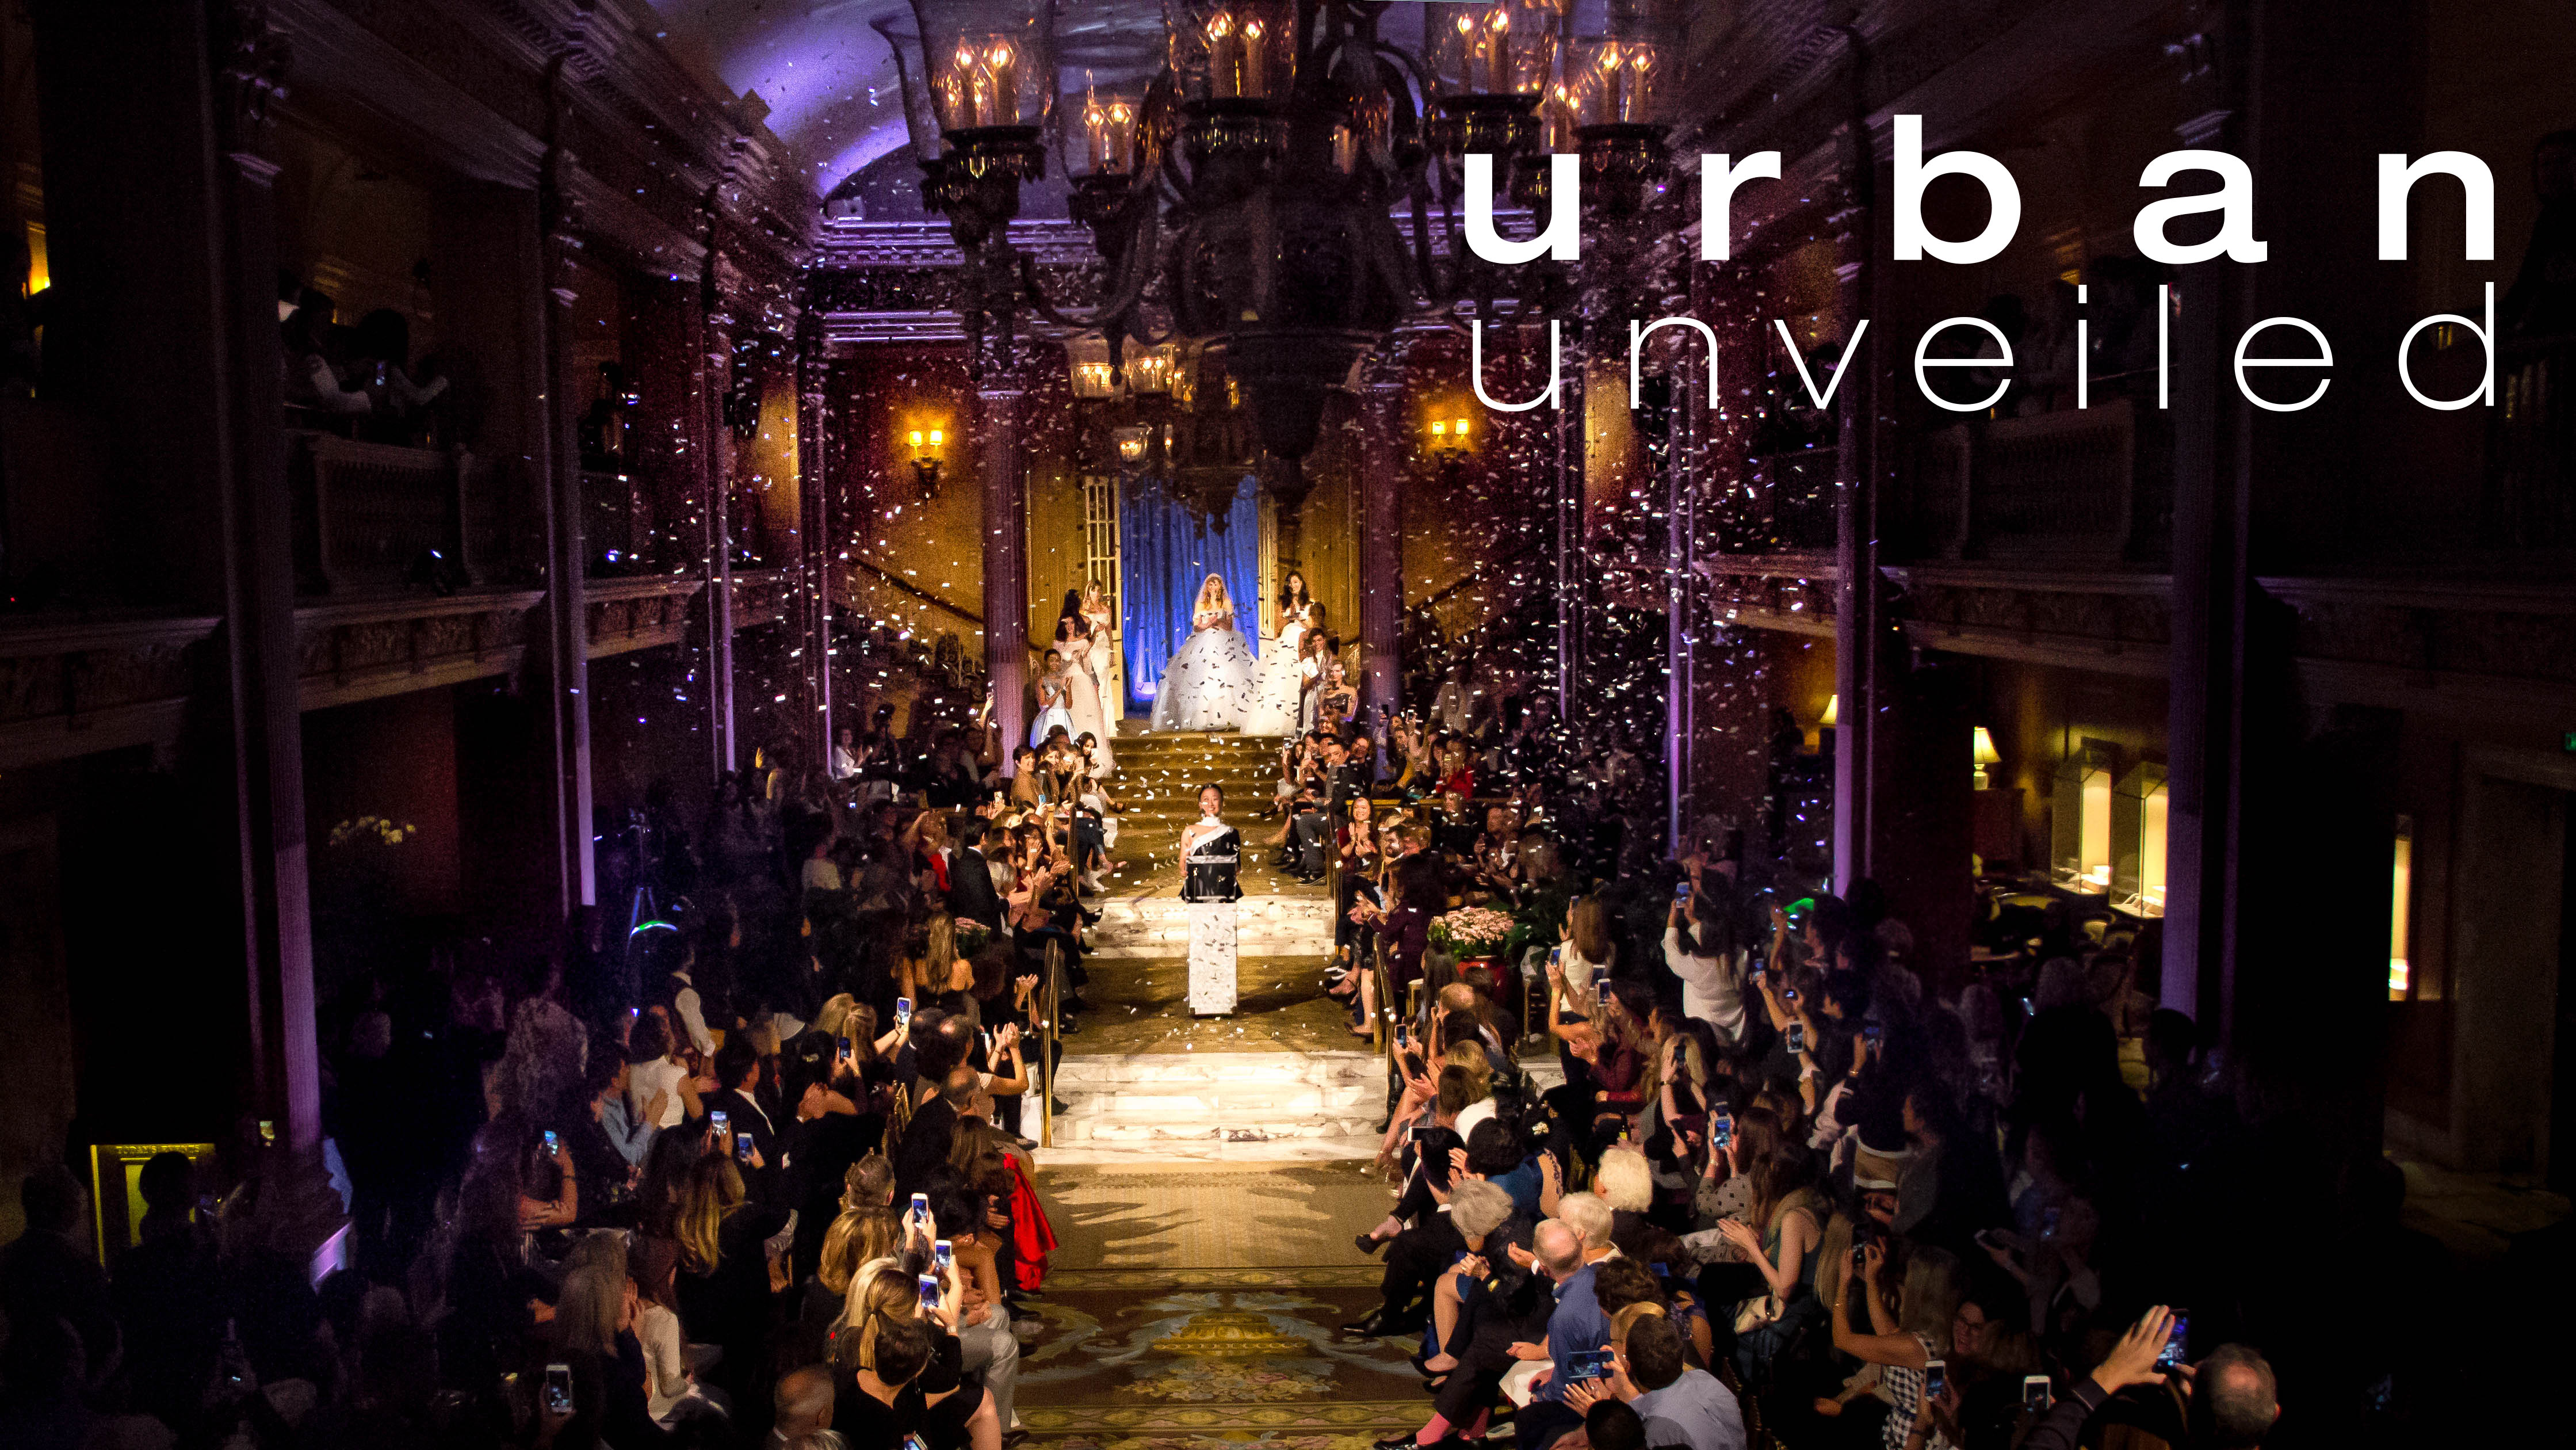 Seattle Bride's Urban Unveiled 2019 - photo from the Luly Yang runway